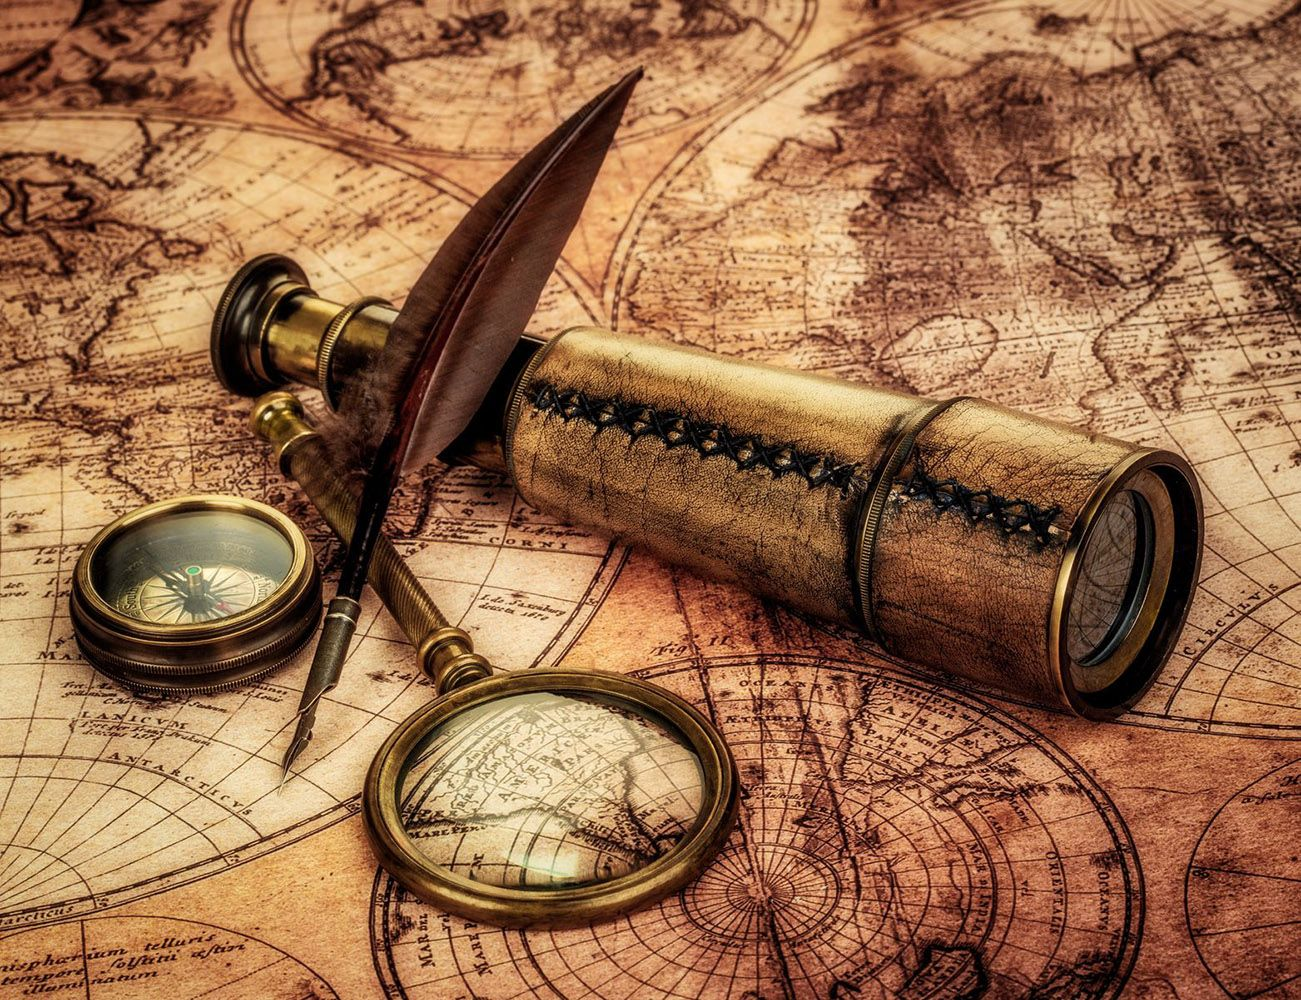 Enjoy A Custom Wall Mural Such As This Old Map With Quill Pen And Telescope Take An Ordinary Wall And Make It Extraordinary Old Map Map Compass Quill And Ink